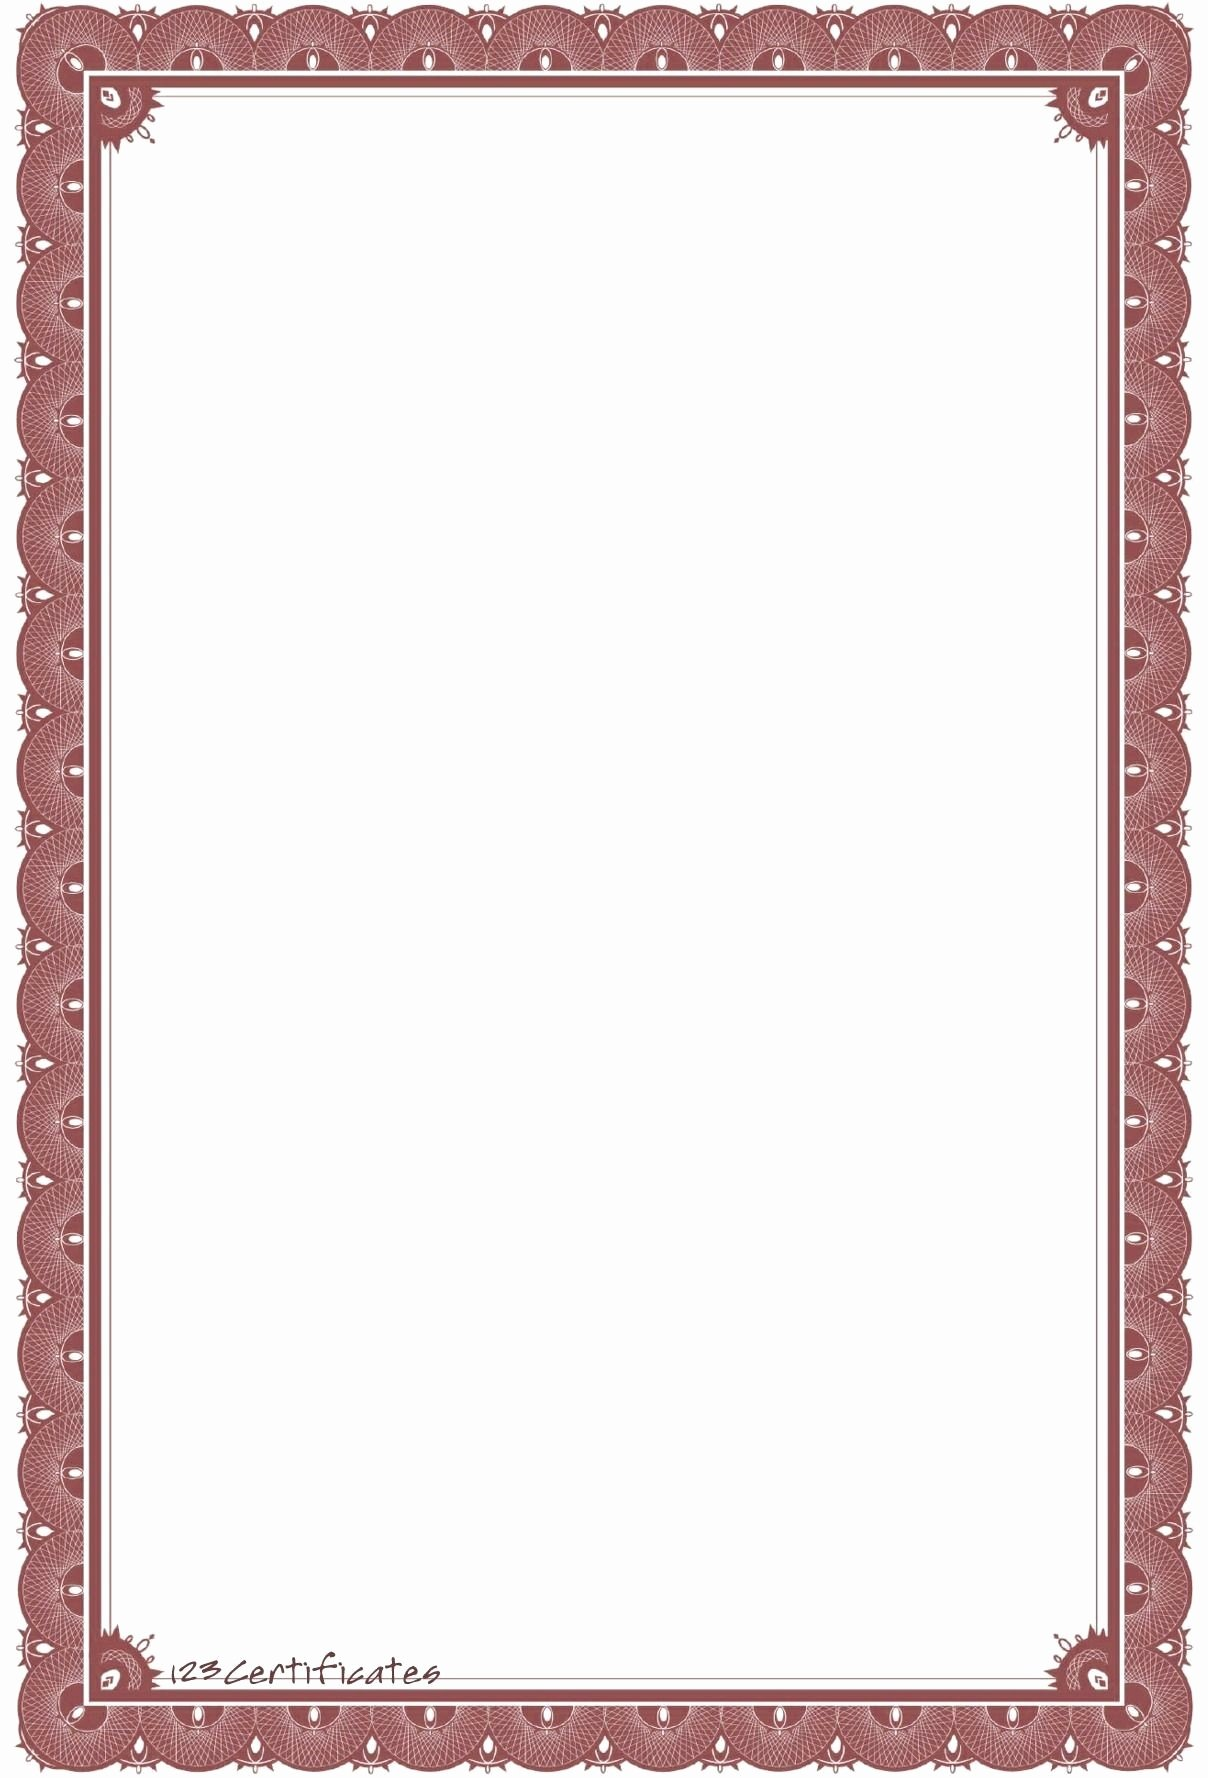 Certificate Borders for Word Elegant Certificate Border Design Word Flowersheet